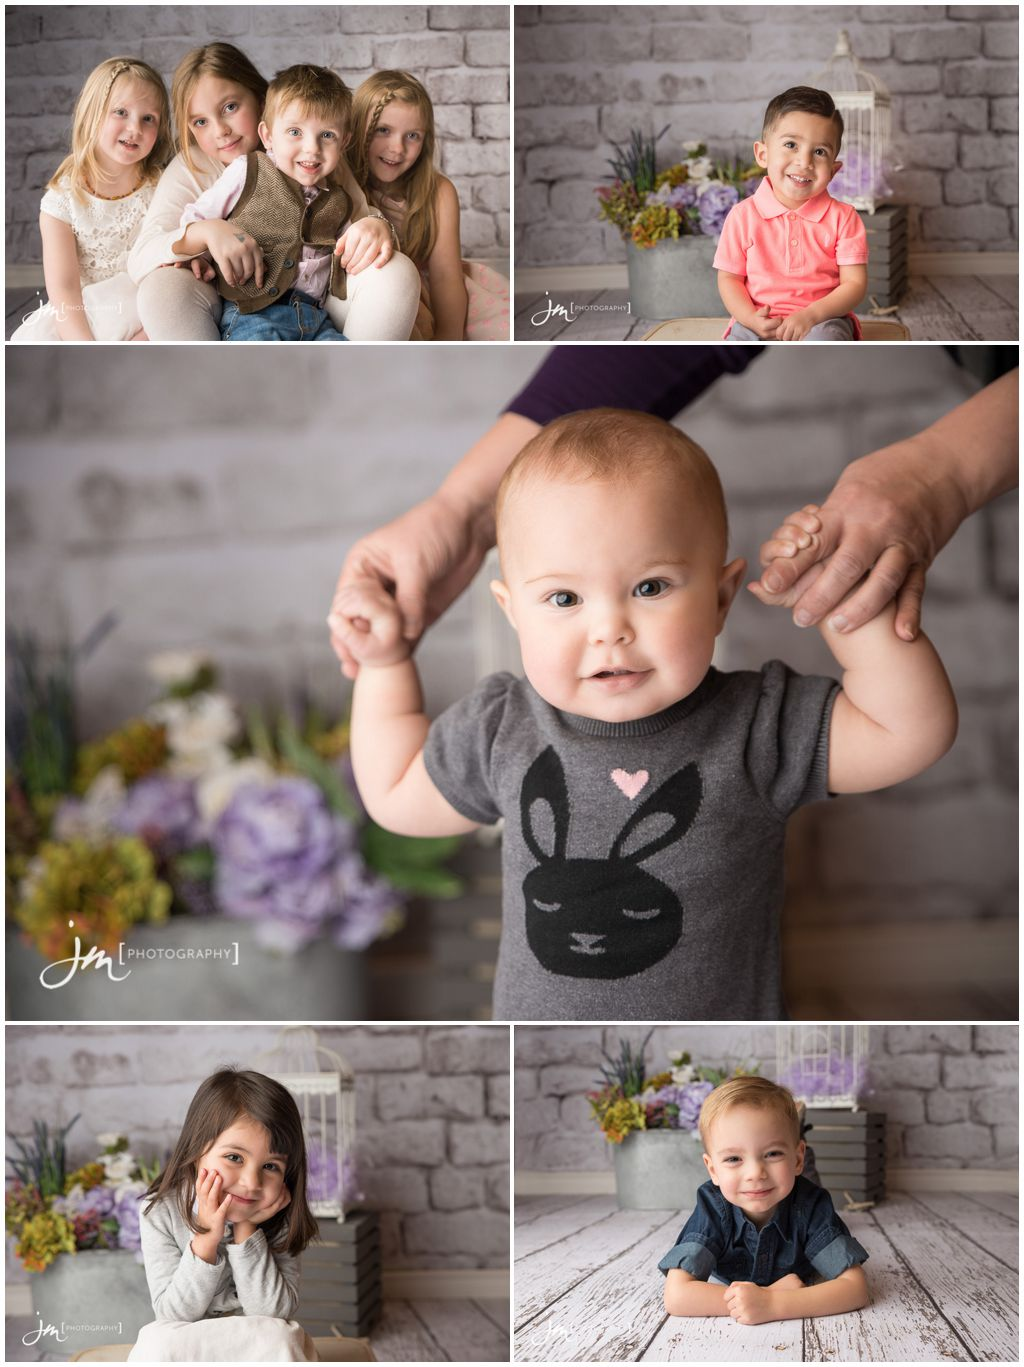 160306_3-Calgary-Newborn-Photographers-JM_Photography-Amy-Cheng-Carriage-House-Inn-Mommylicious